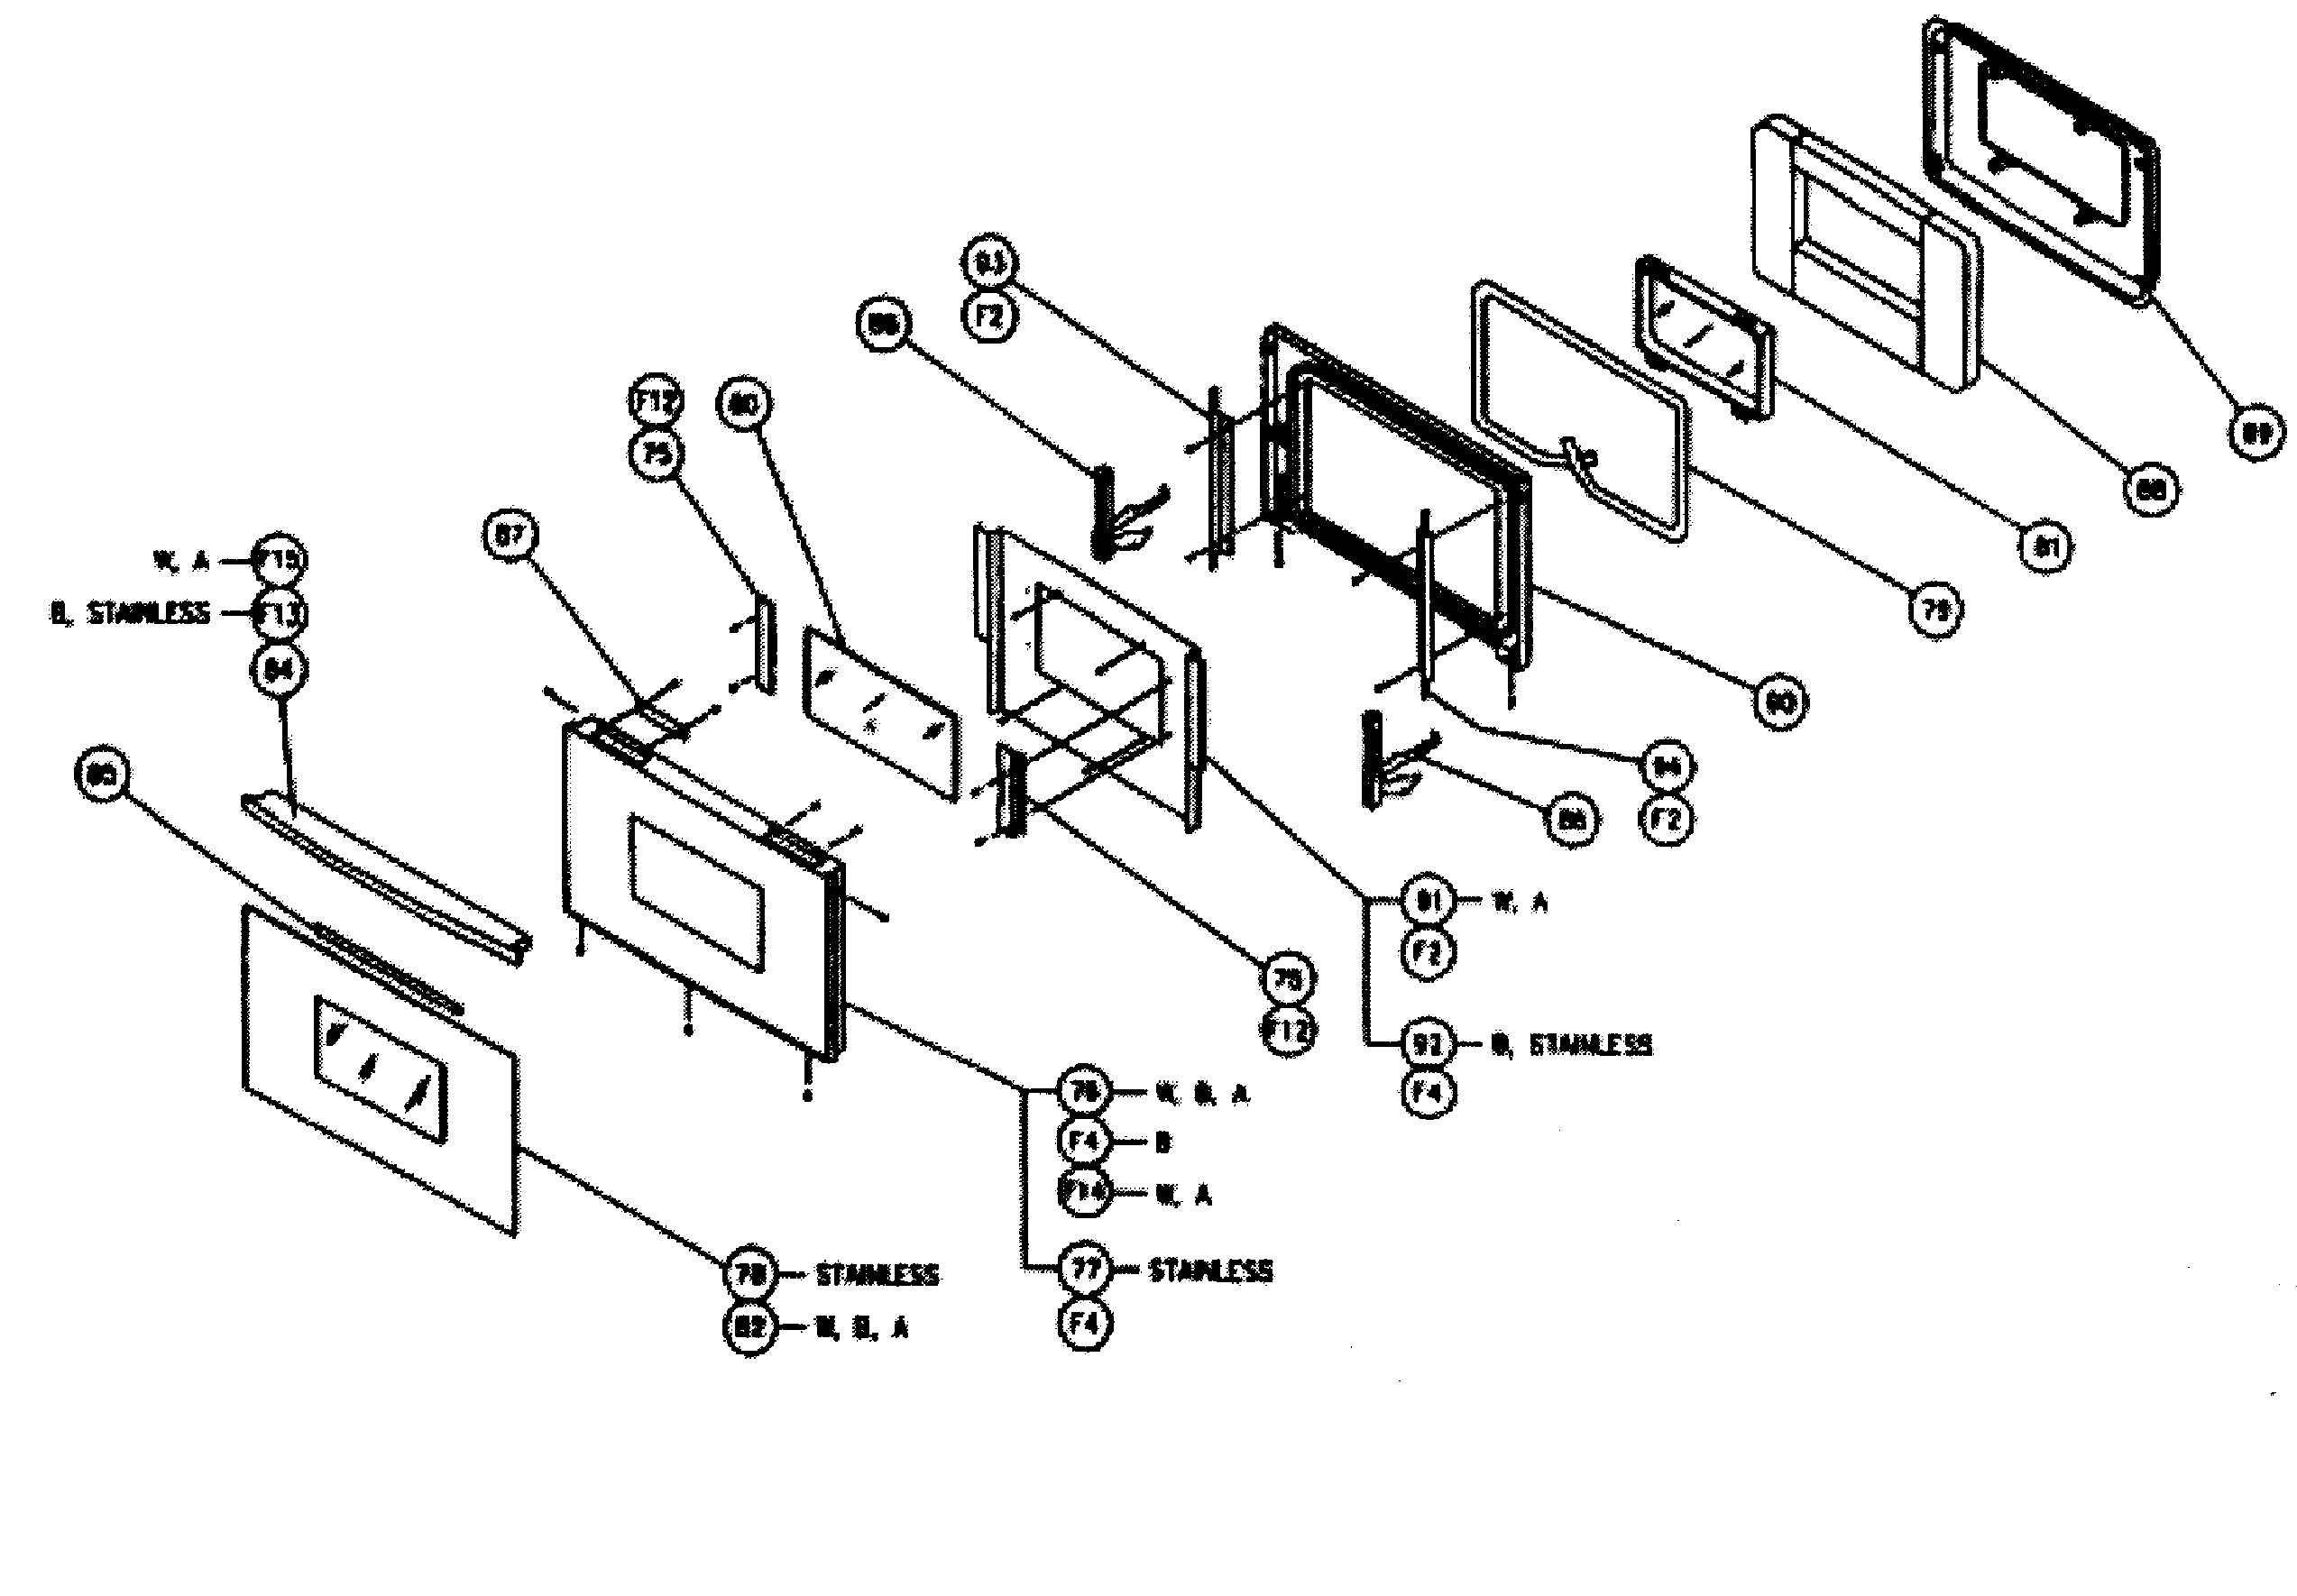 dacor stove wiring diagram manual e bookdacor range wiring diagram wiring diagram godacor stove wiring diagram [ 2547 x 1770 Pixel ]